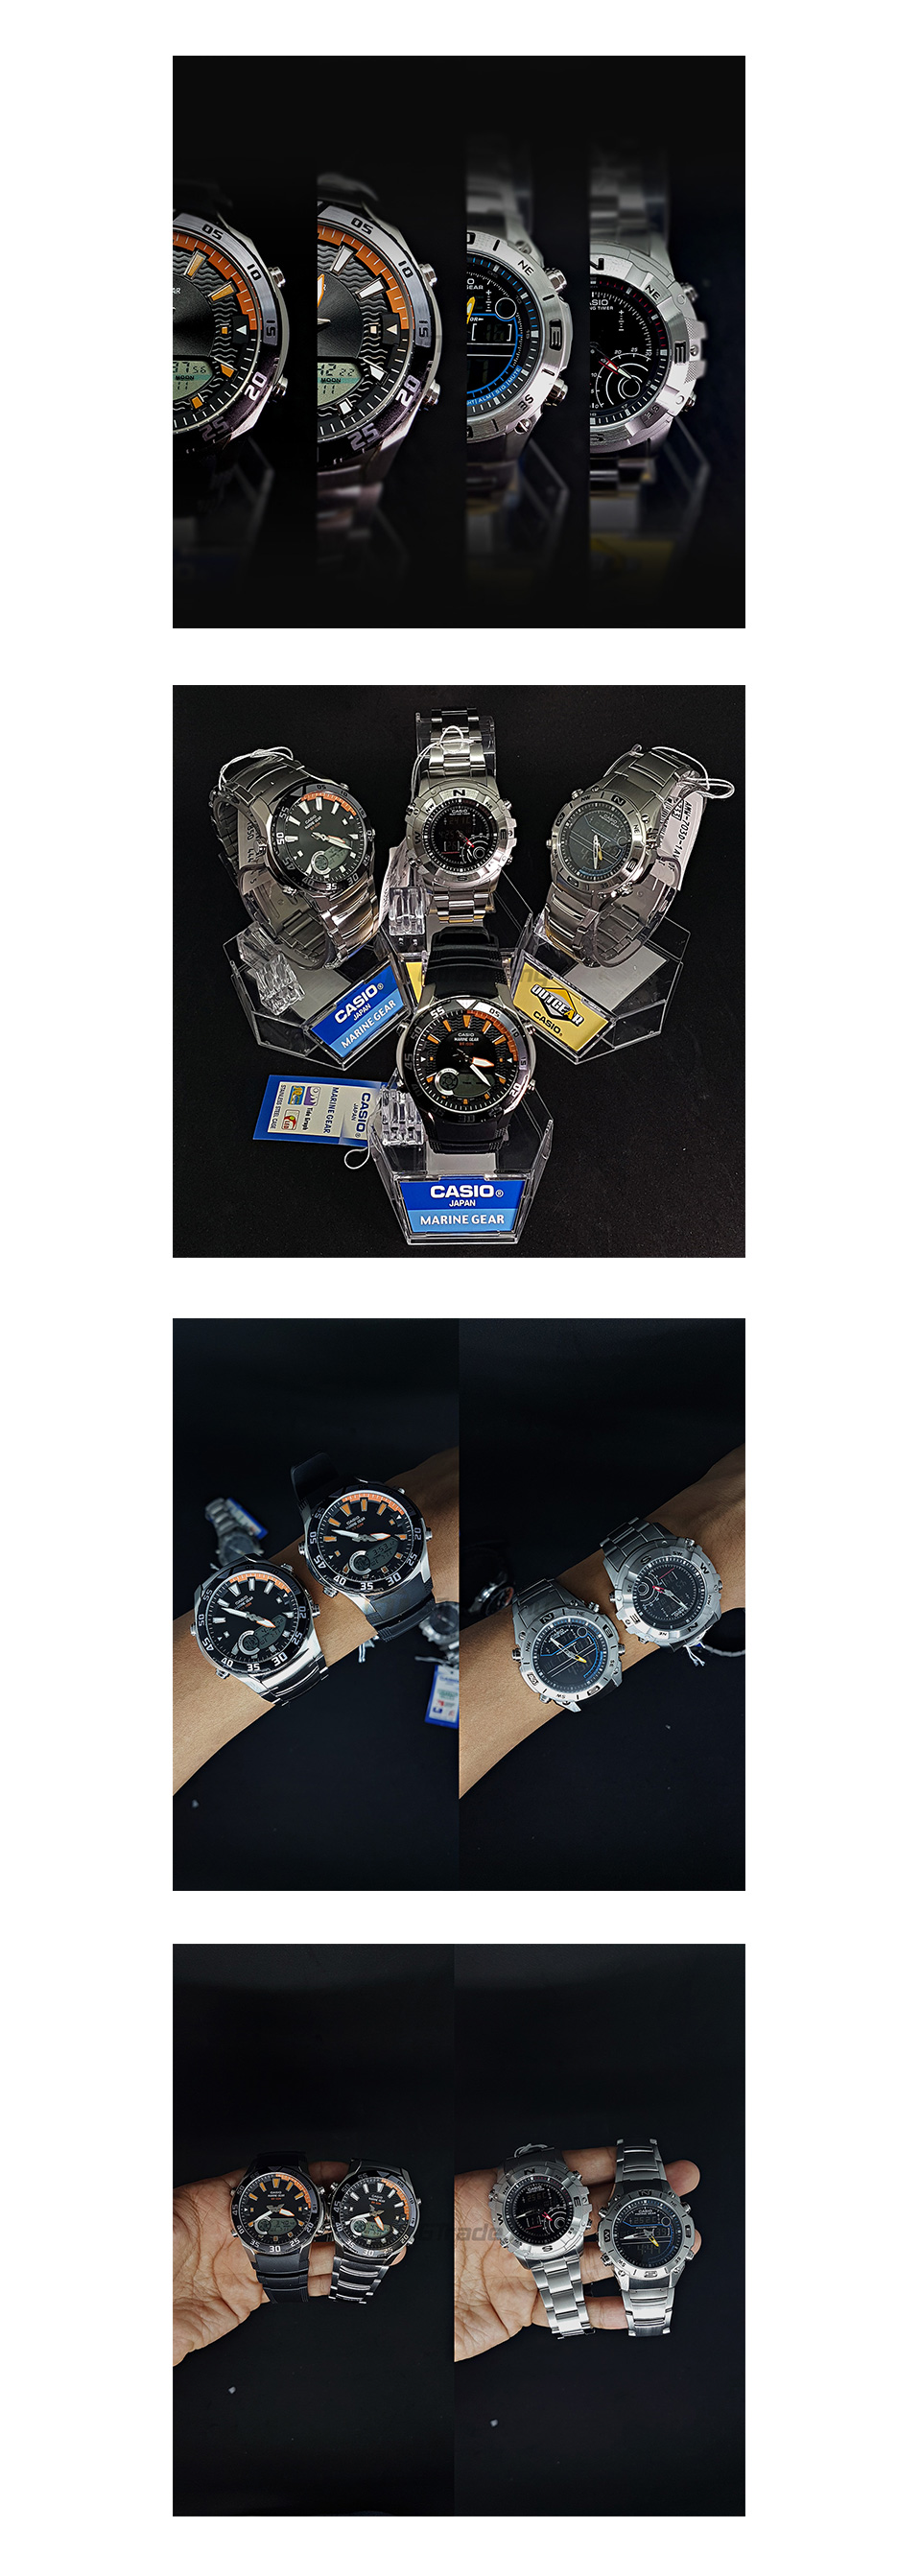 casio-outgear-fishing-gear-watch-moon-graph-thermometer-100-meter-water-resistance-amw-703d-1av